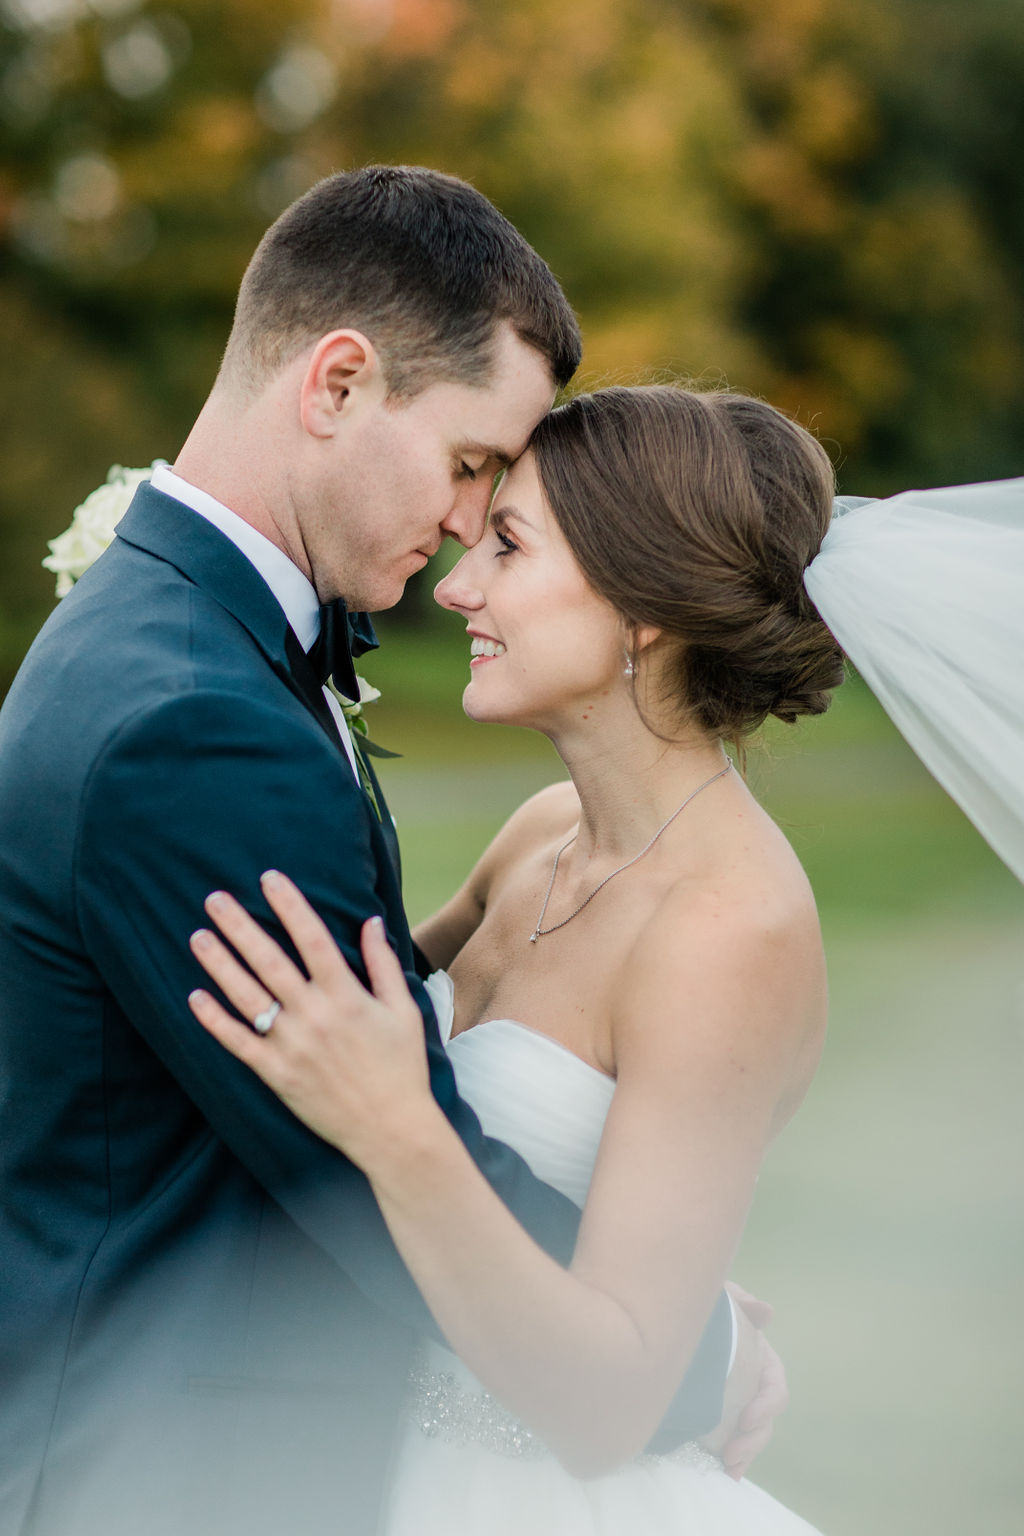 Katie&Brian_Wedding__JenHarveyPhotography-627.jpg